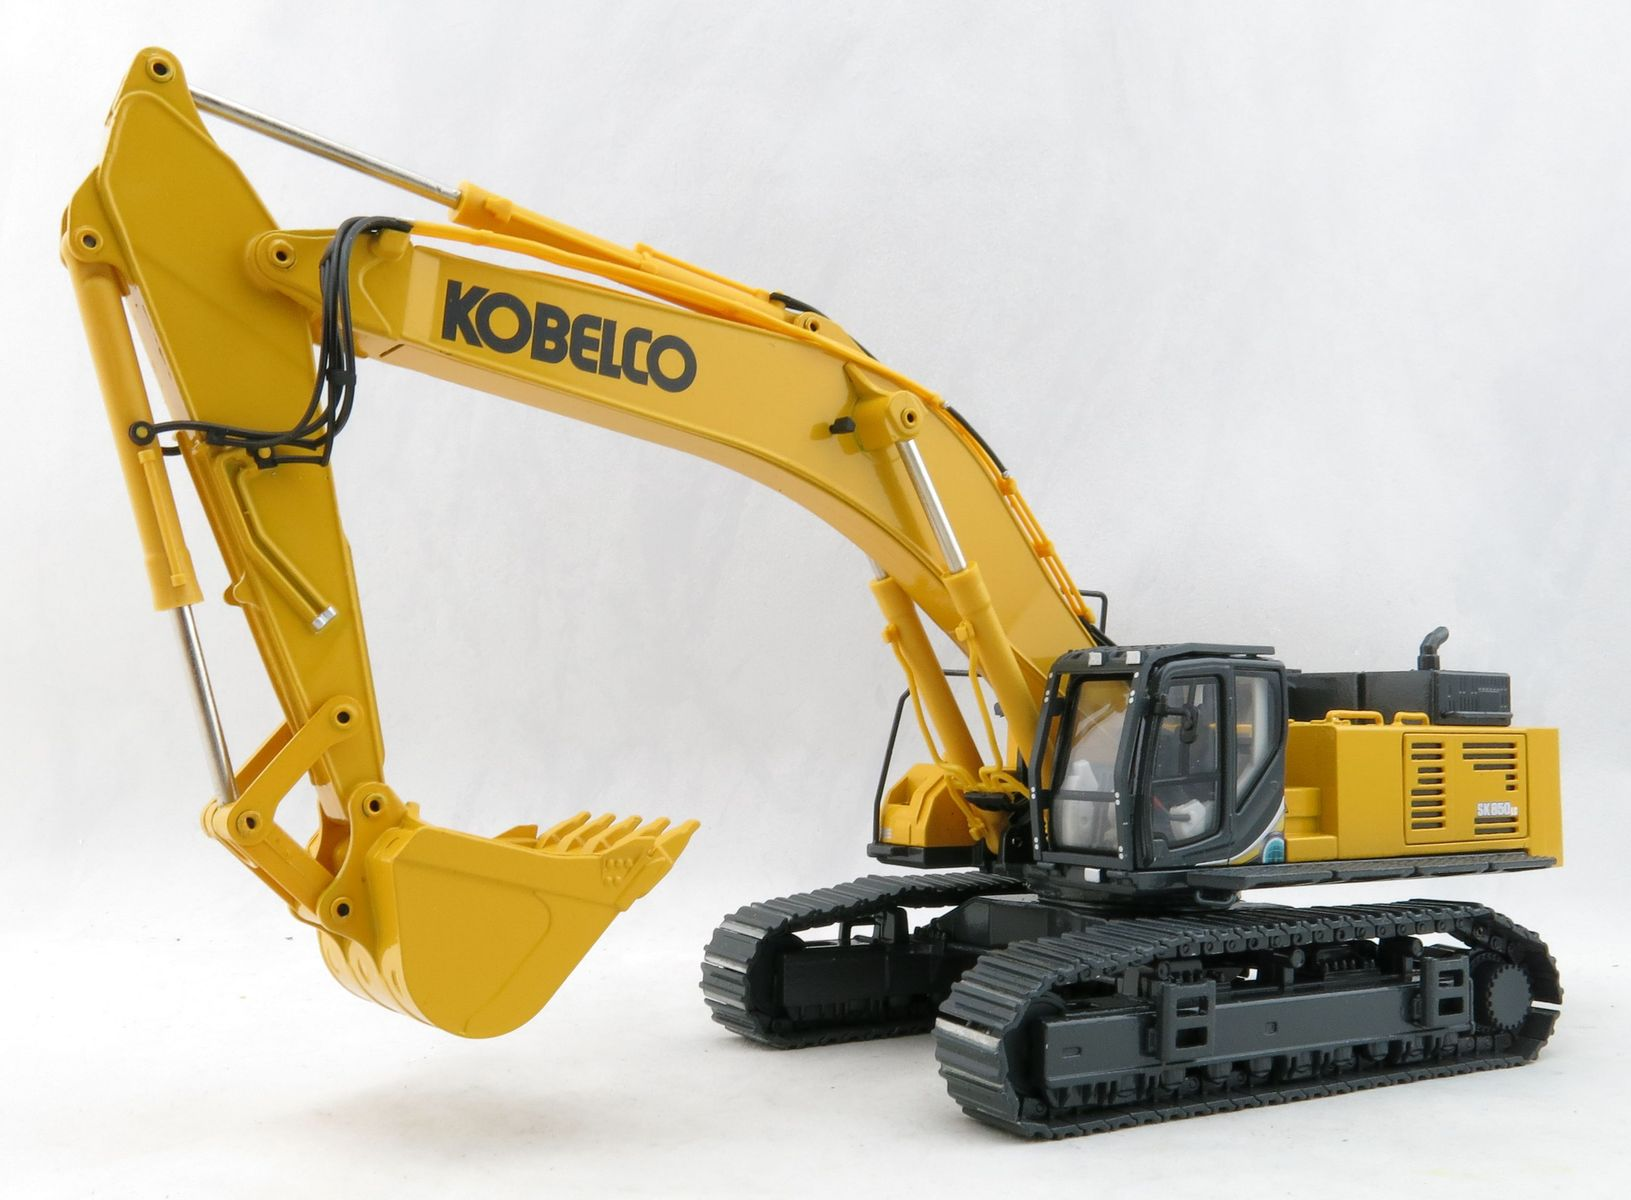 Conrad 2210//0 Kobelco SK 500 LC Large Tracked Hydraulic Excavator Sclae 1:50